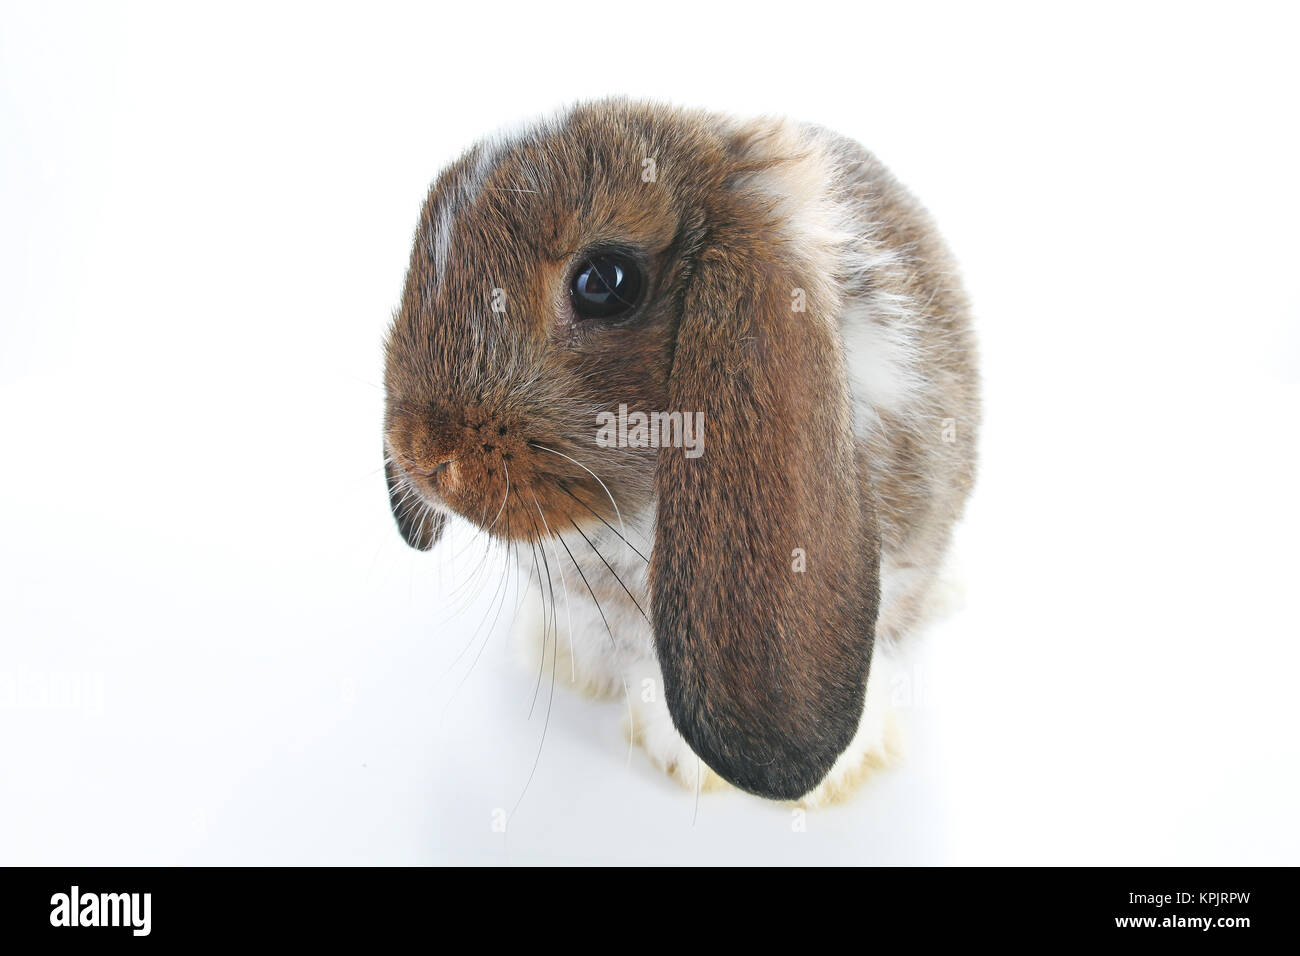 Agouti pet rabbit. Lop eared brown and white agouti bunny. Rabbits. Cute animal photos on isolated white studio - Stock Image